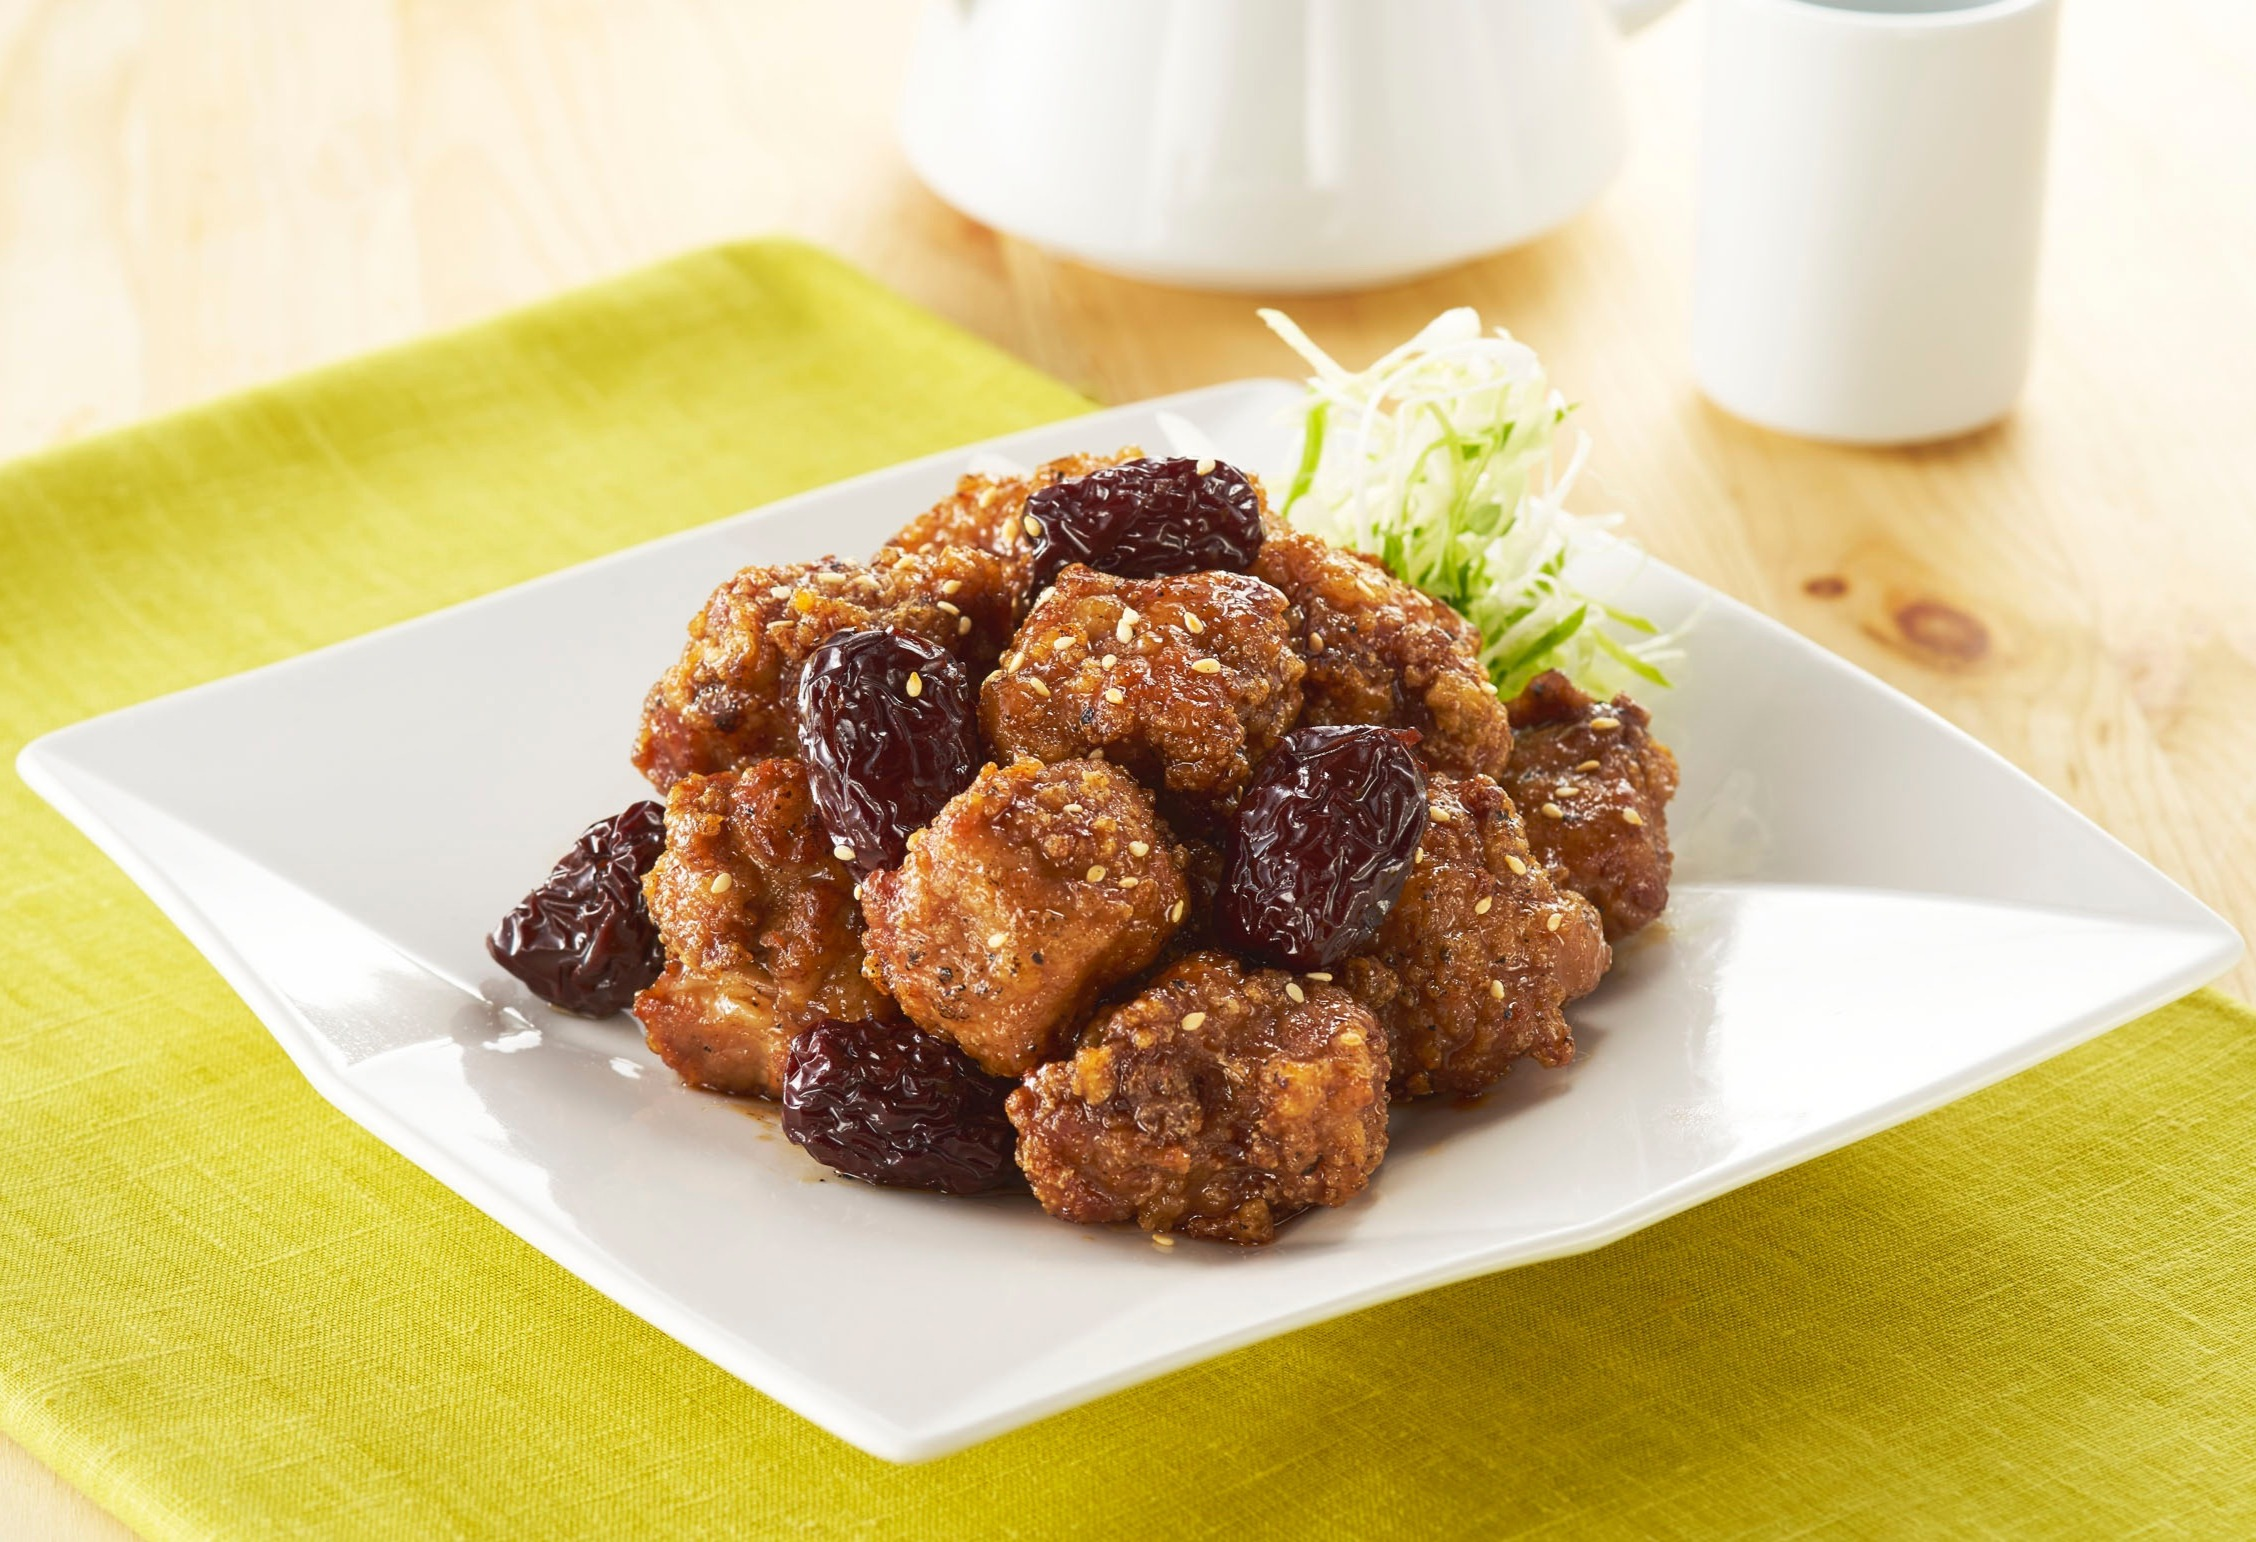 Stir-fried Pork Ribs with Prunes